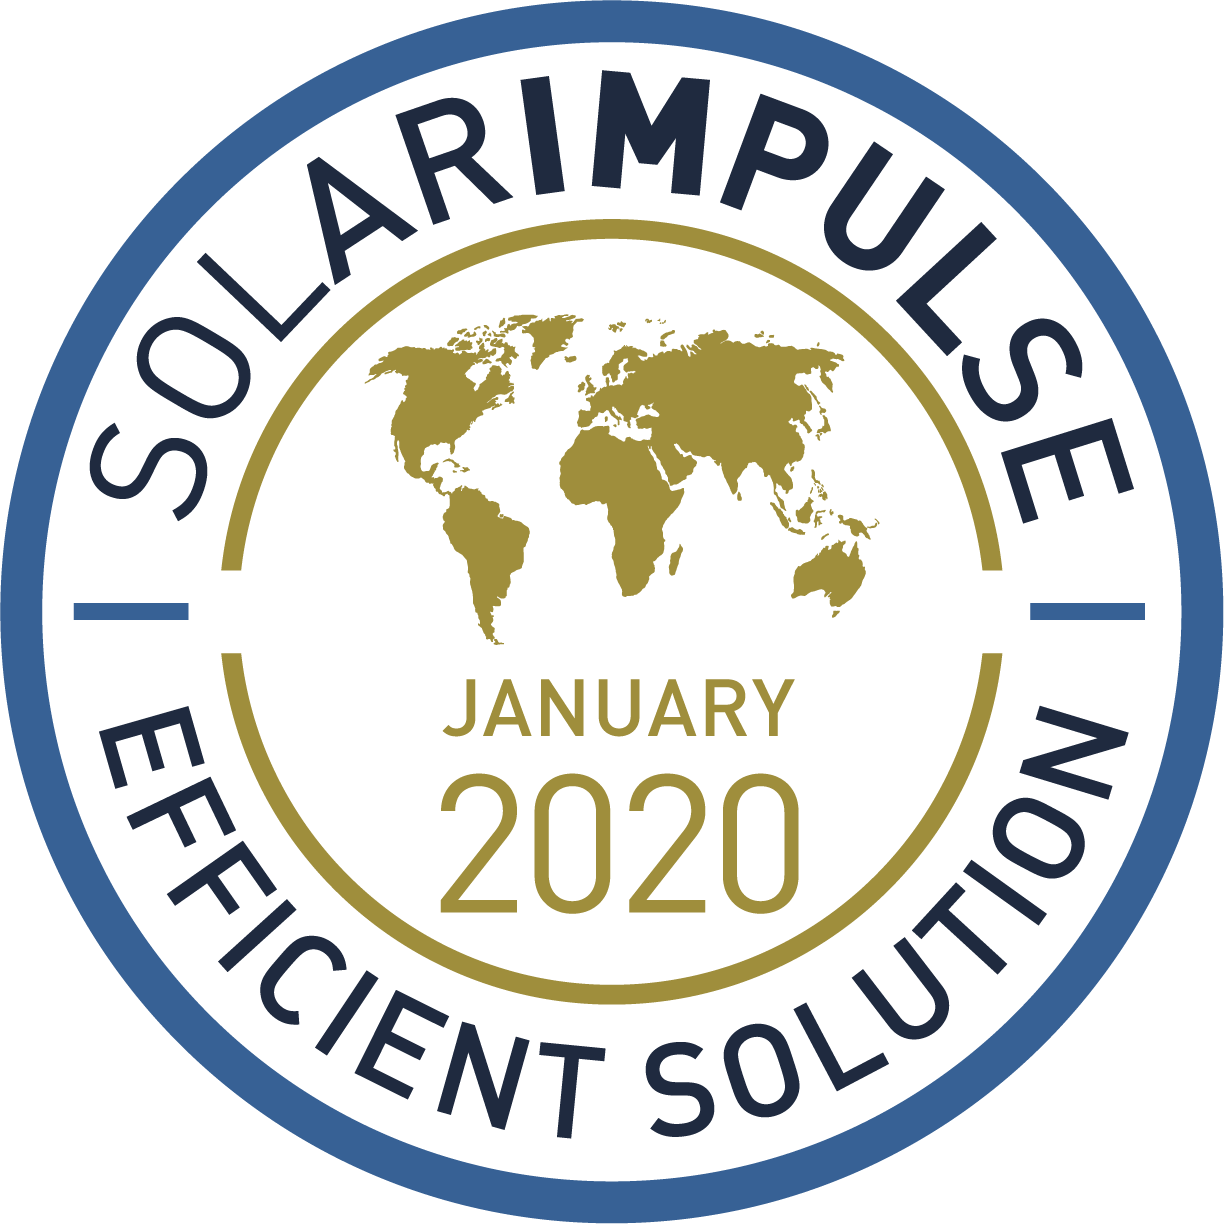 Shayp décroche le Solar Impulse Efficient Solution Label